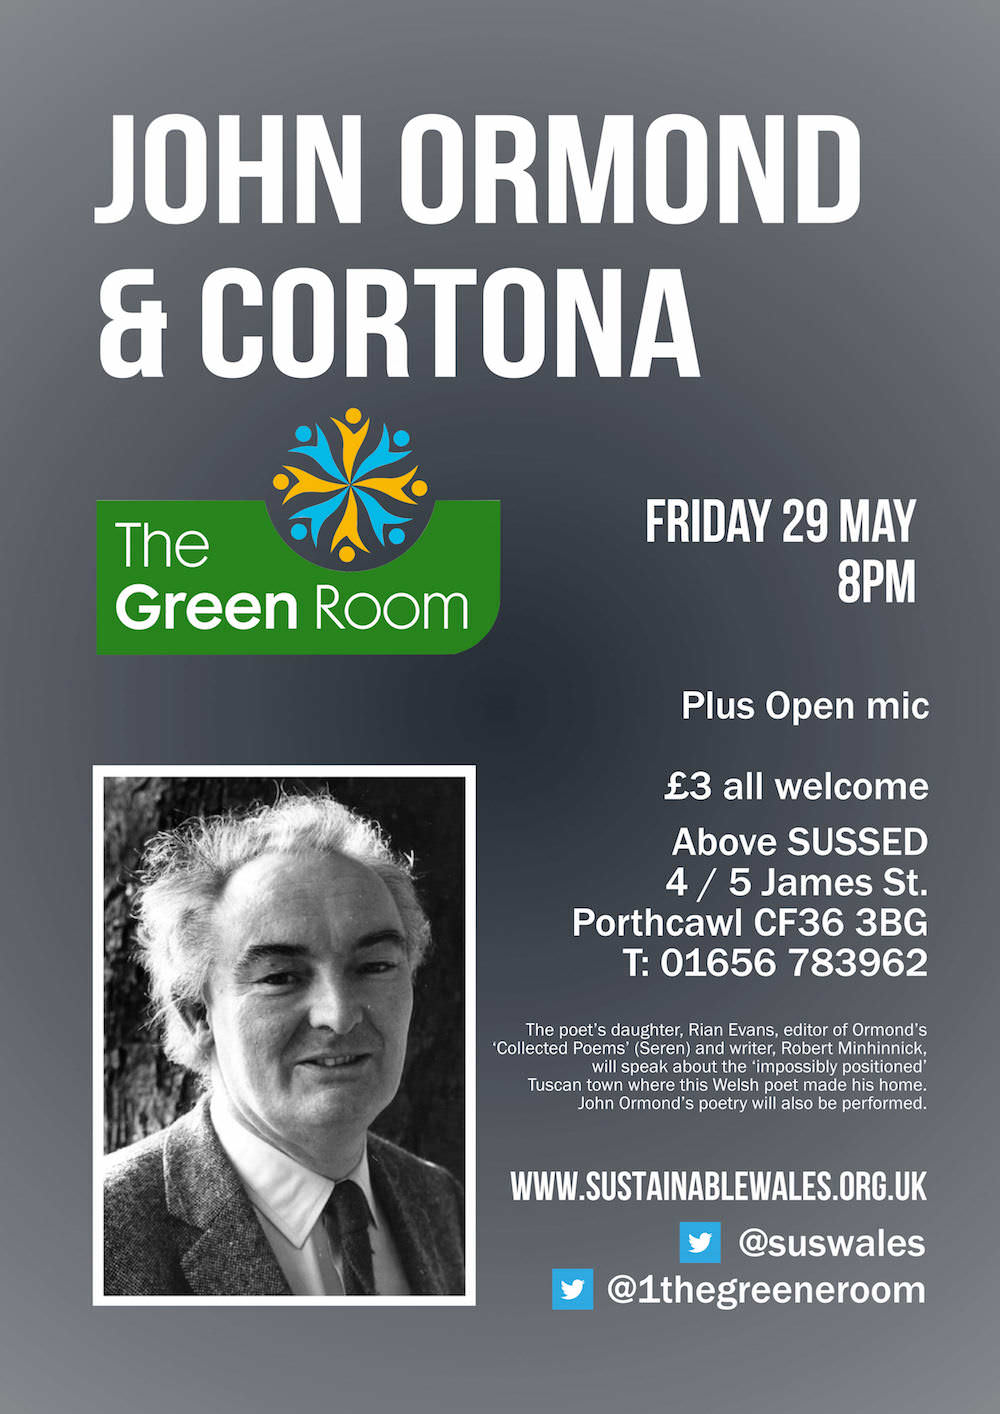 John Ormond green room May 2015 web.jpg